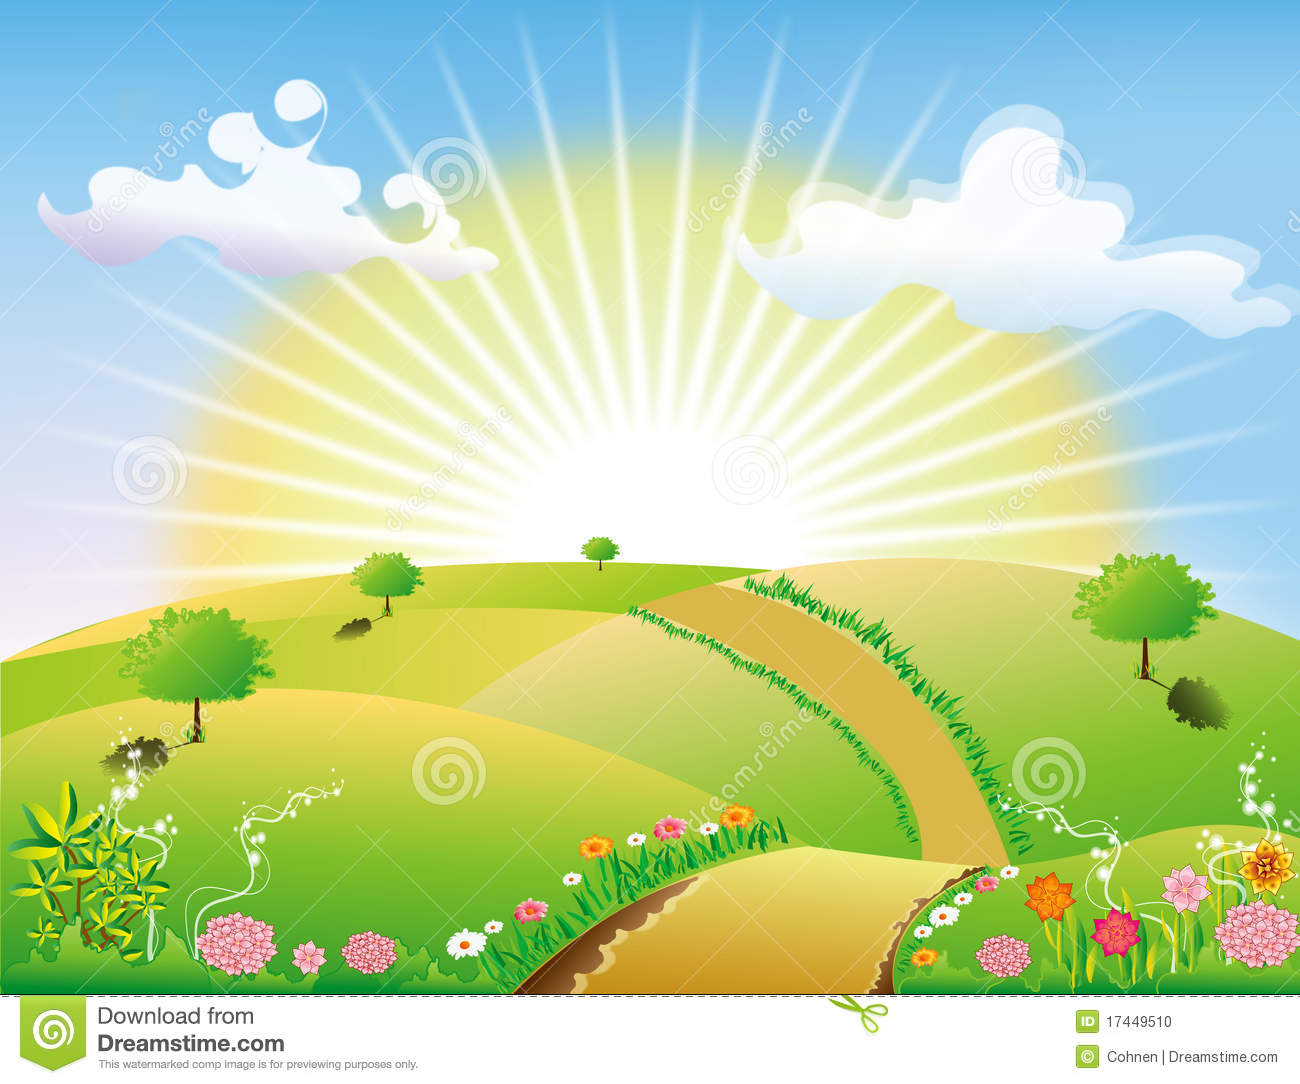 Nature Clipart Images Abstract nature landscape sun